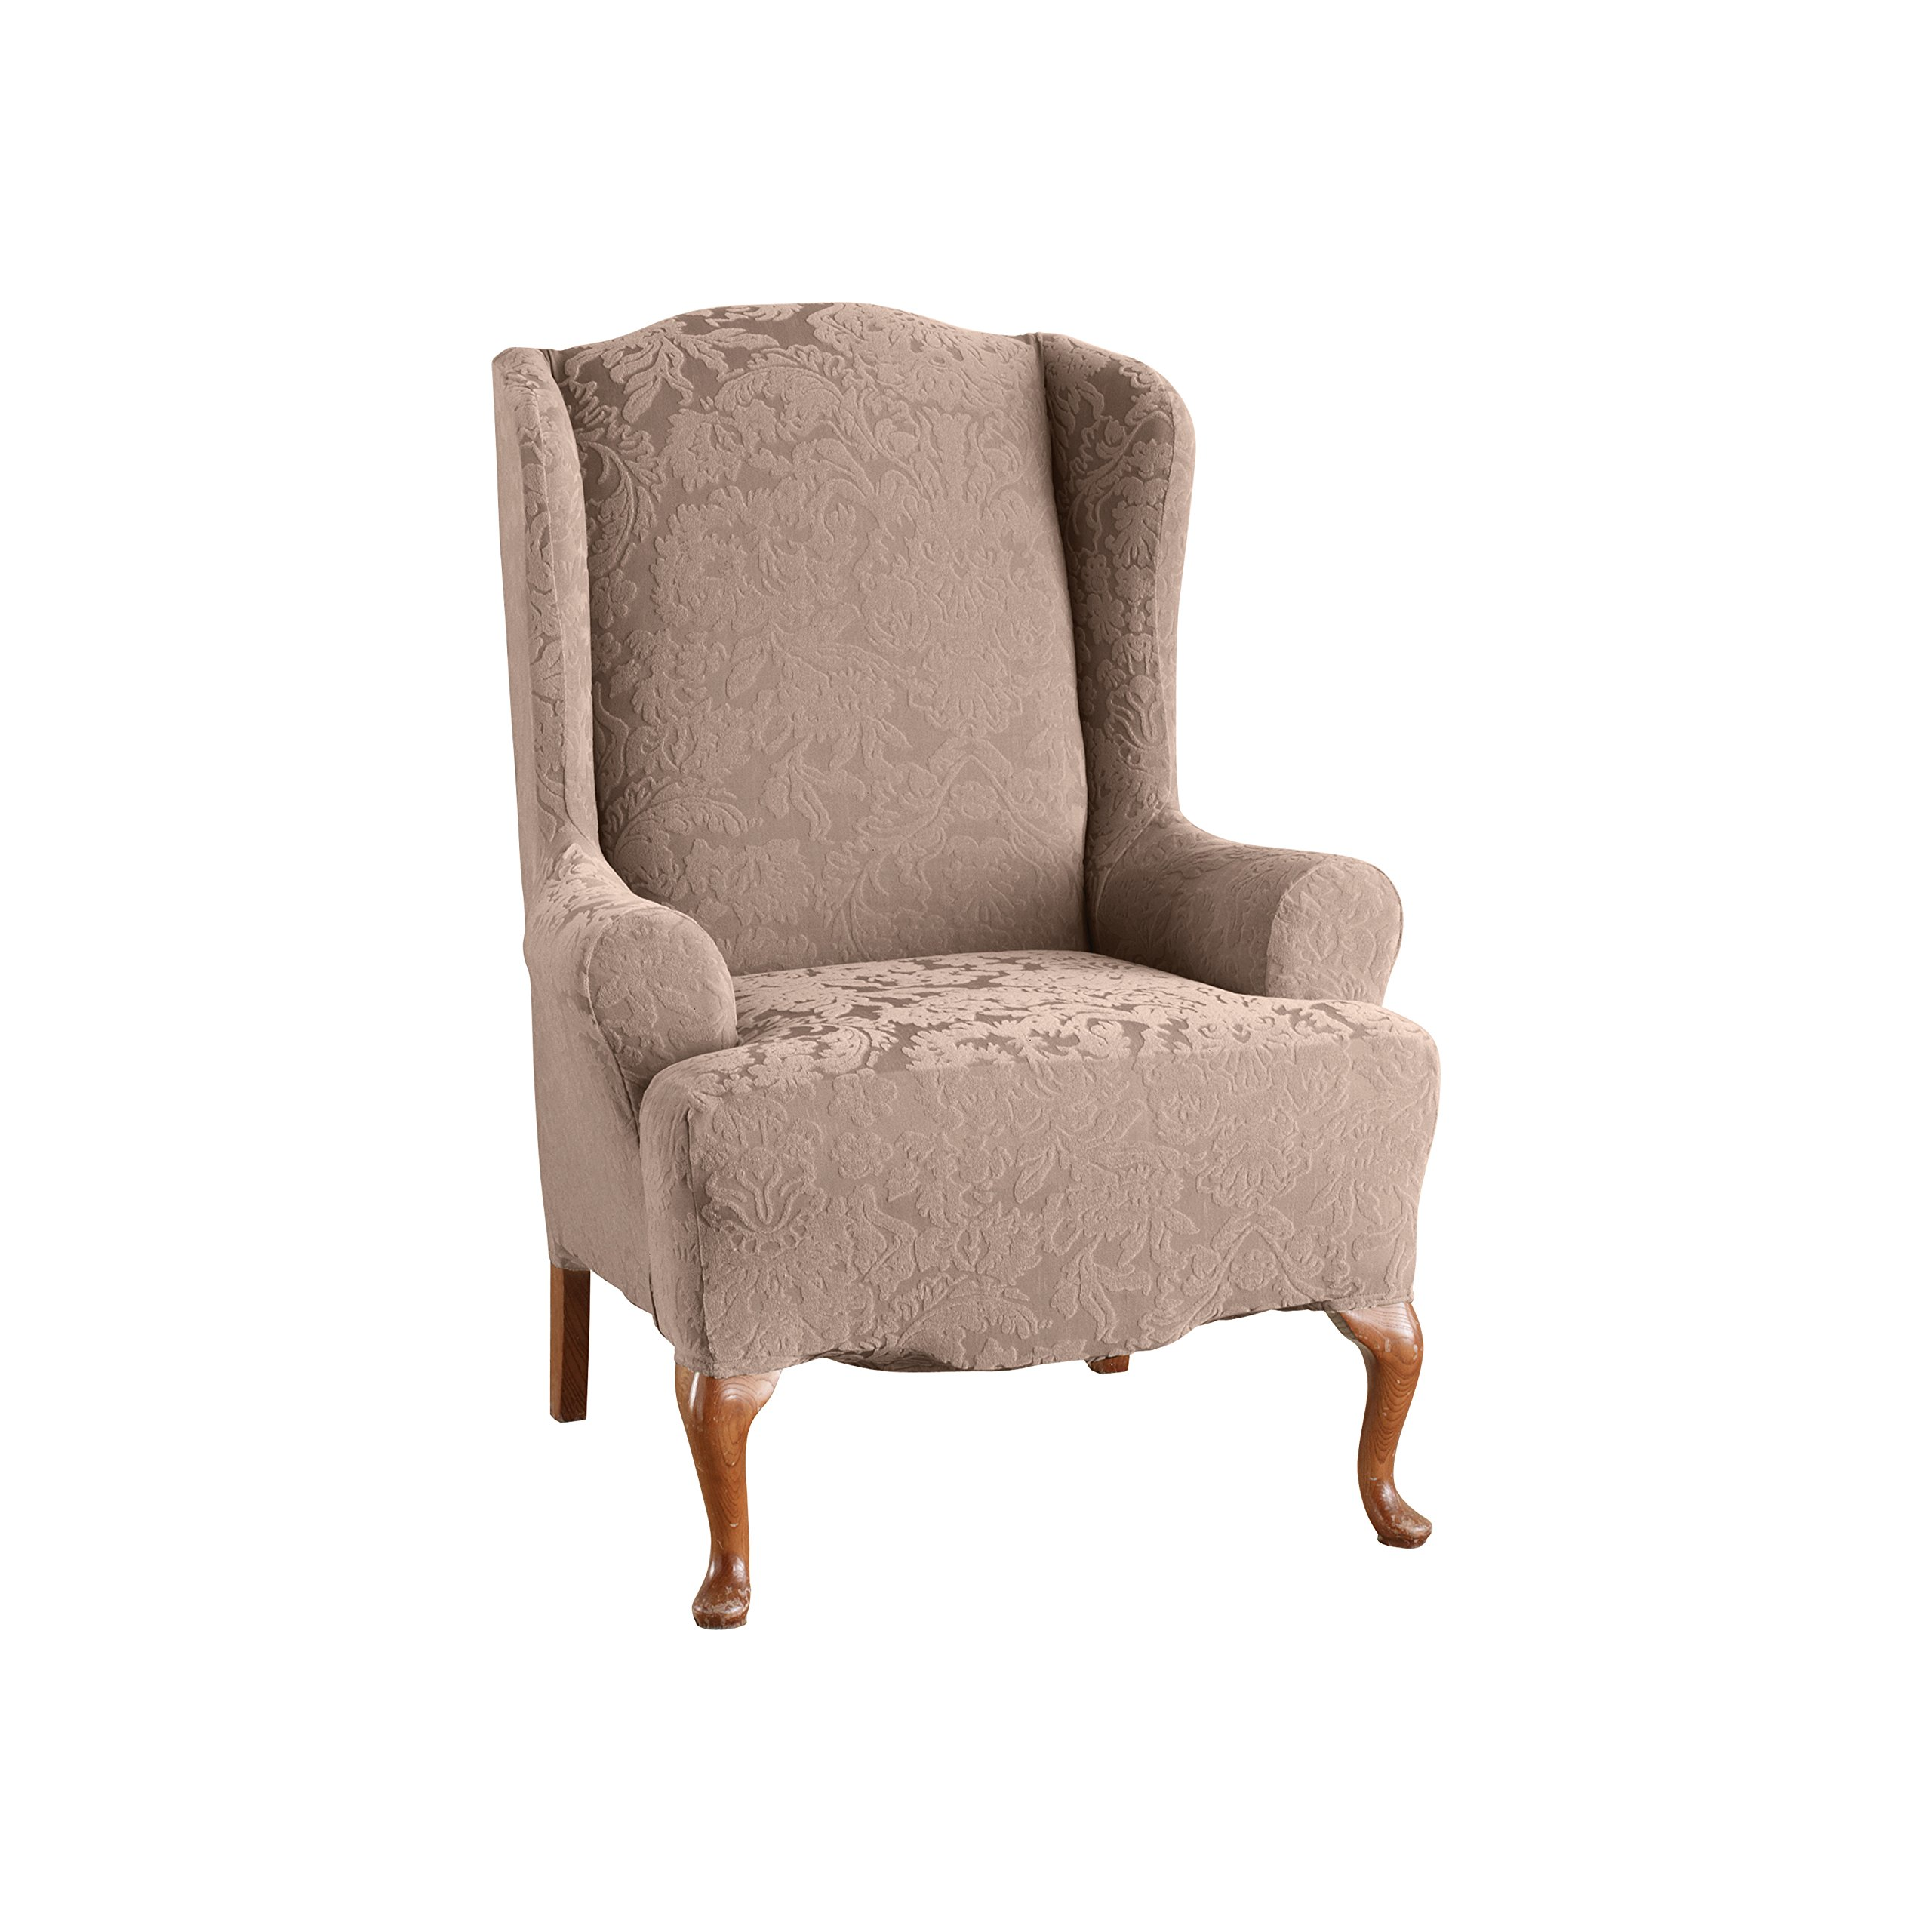 Sure Fit Stretch Jacquard Damask - Wing Chair Slipcover  - Mushroom (SF39614)